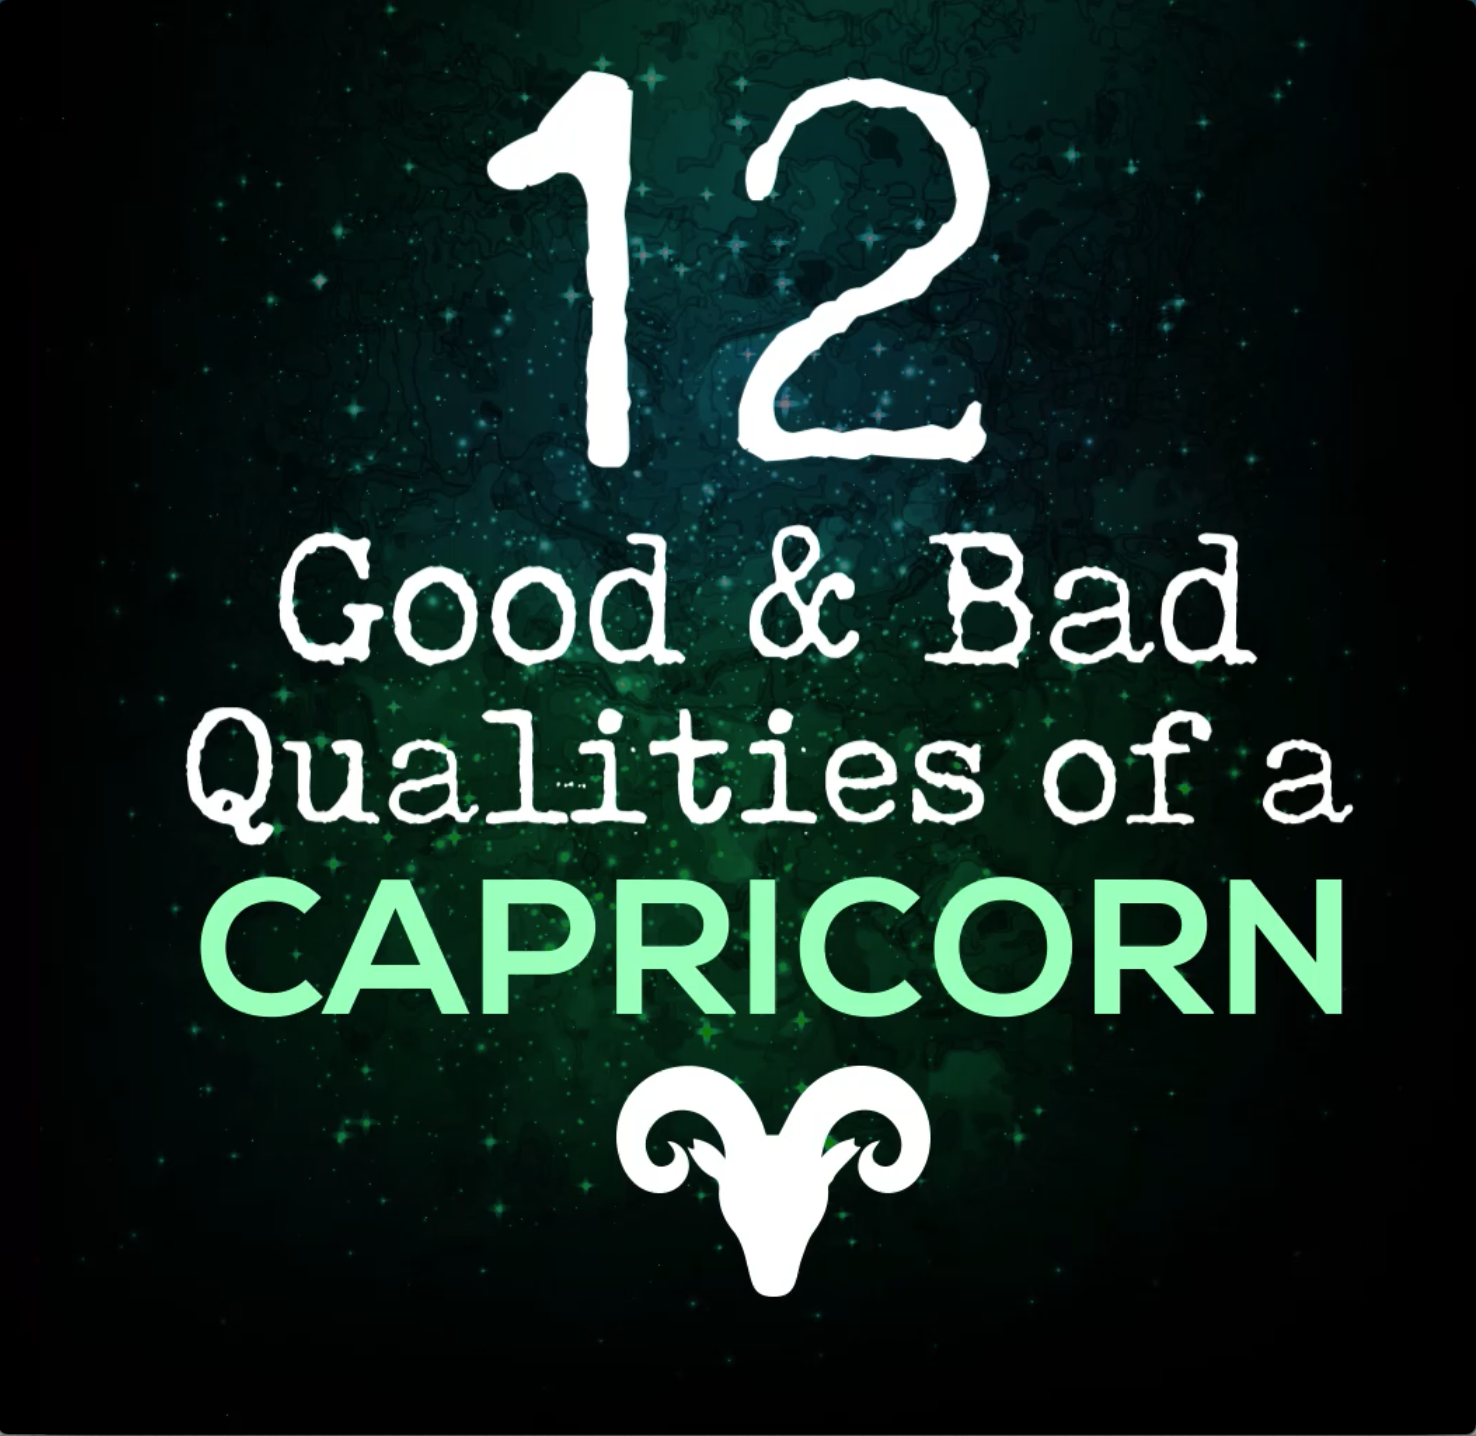 12 good and bad qualities of a capricorn